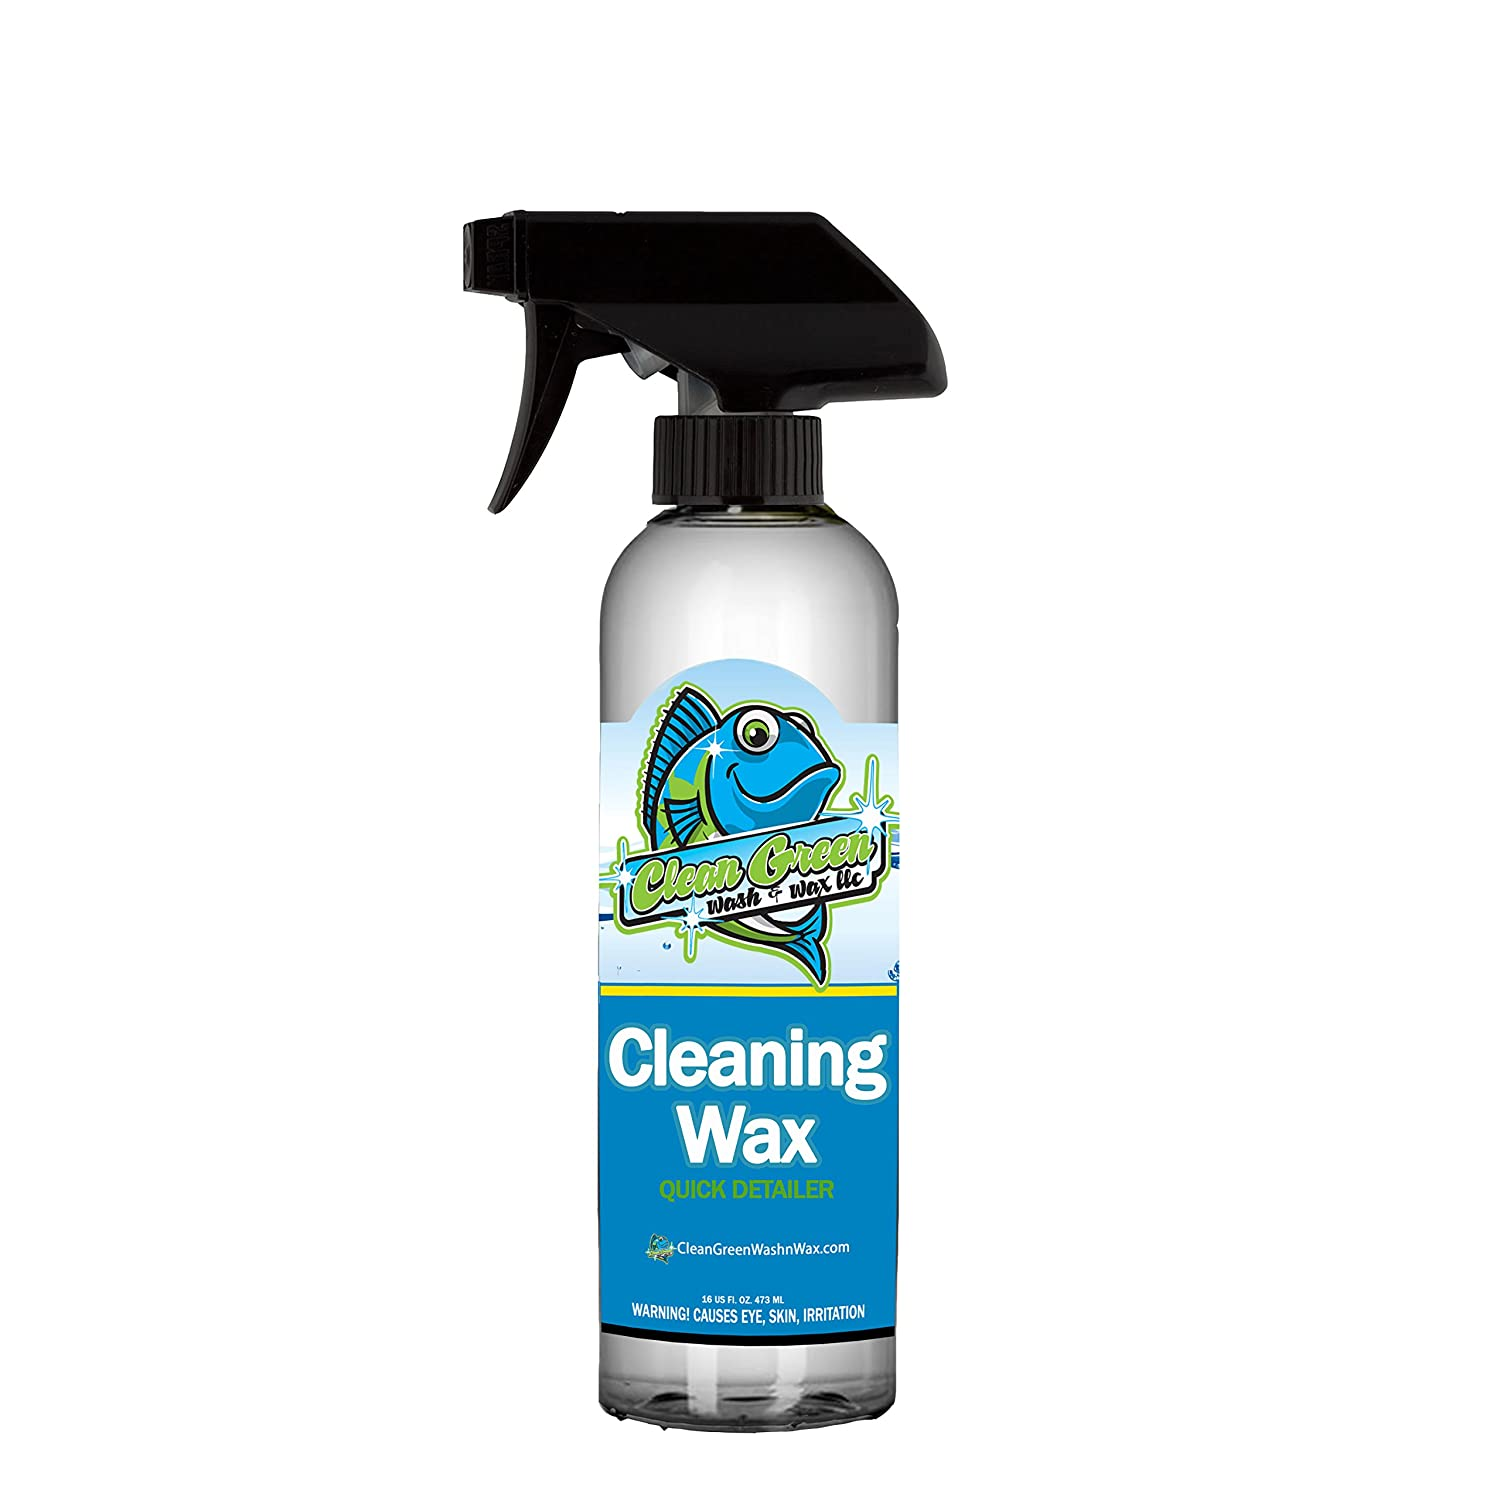 Clean Green Wash & Wax Cleaning Wax Spray Sealant the best spray wax, quick detailer or waterless wash to clean and protect your car, motorcycle, UTV, and RV